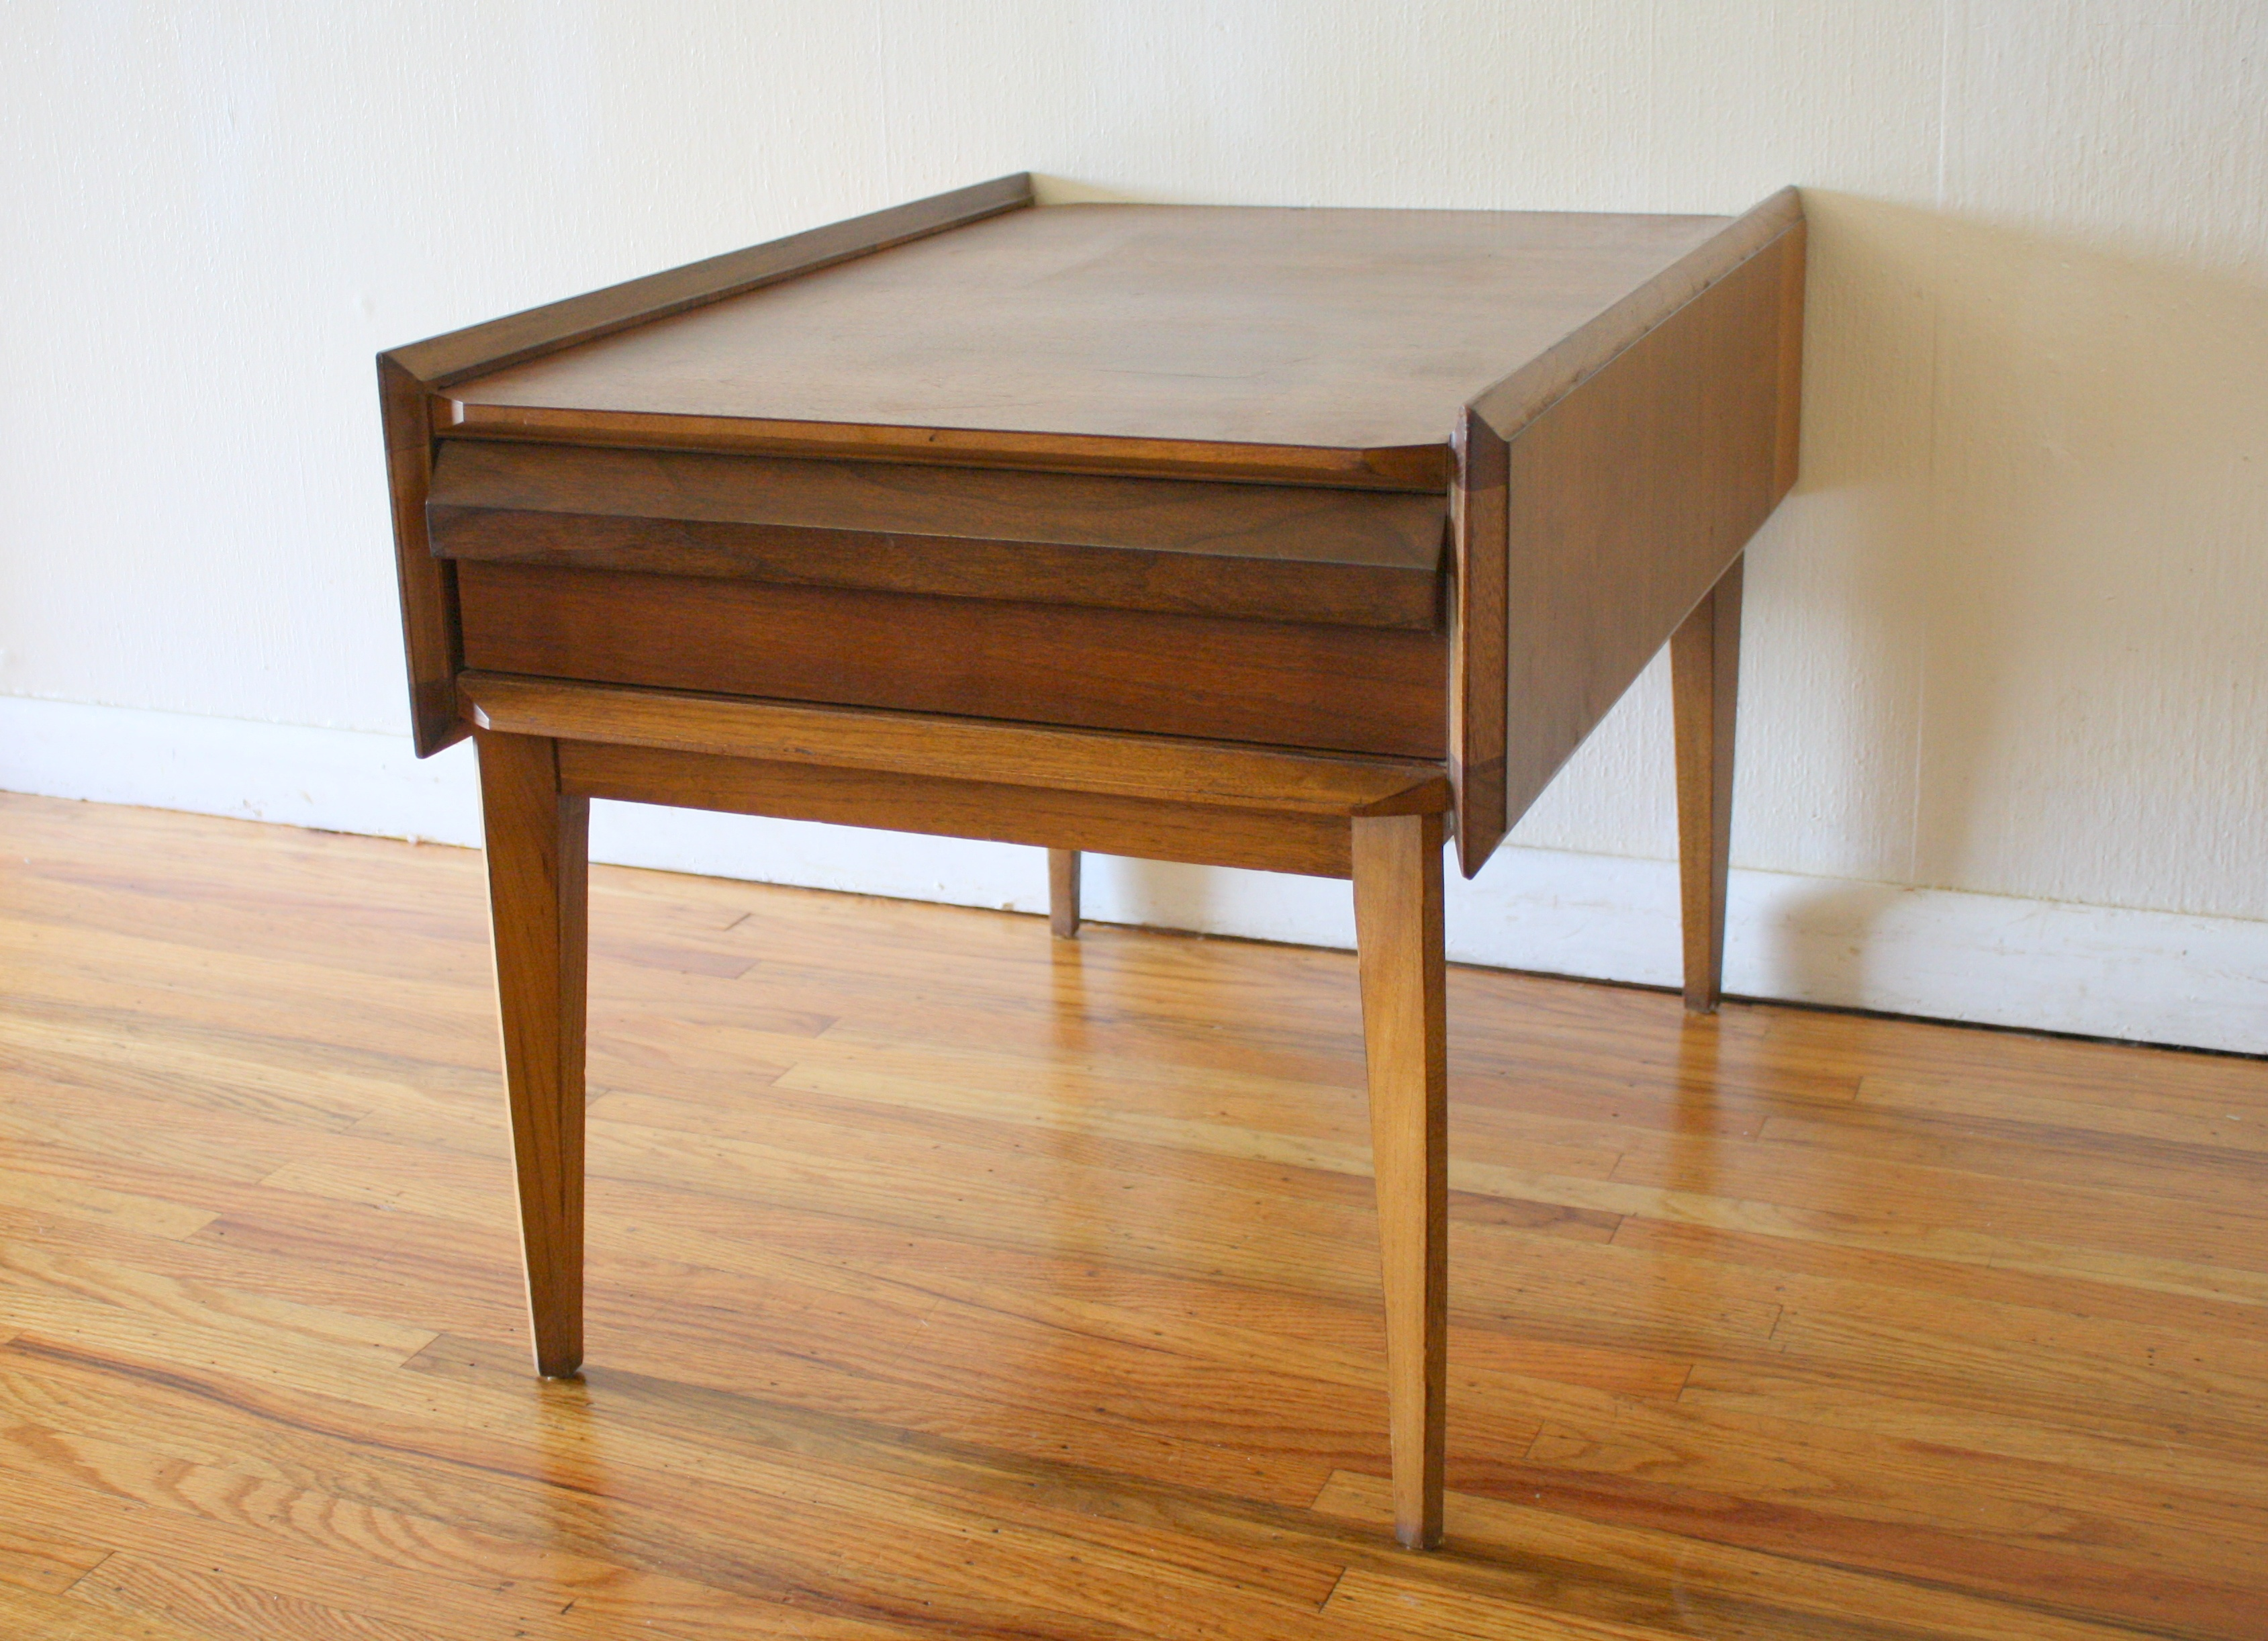 mid century modern accent table room essentials target home goods side end nightstands ked vintage hexagon leick corner computer and writing desk placemat set round wood coffee